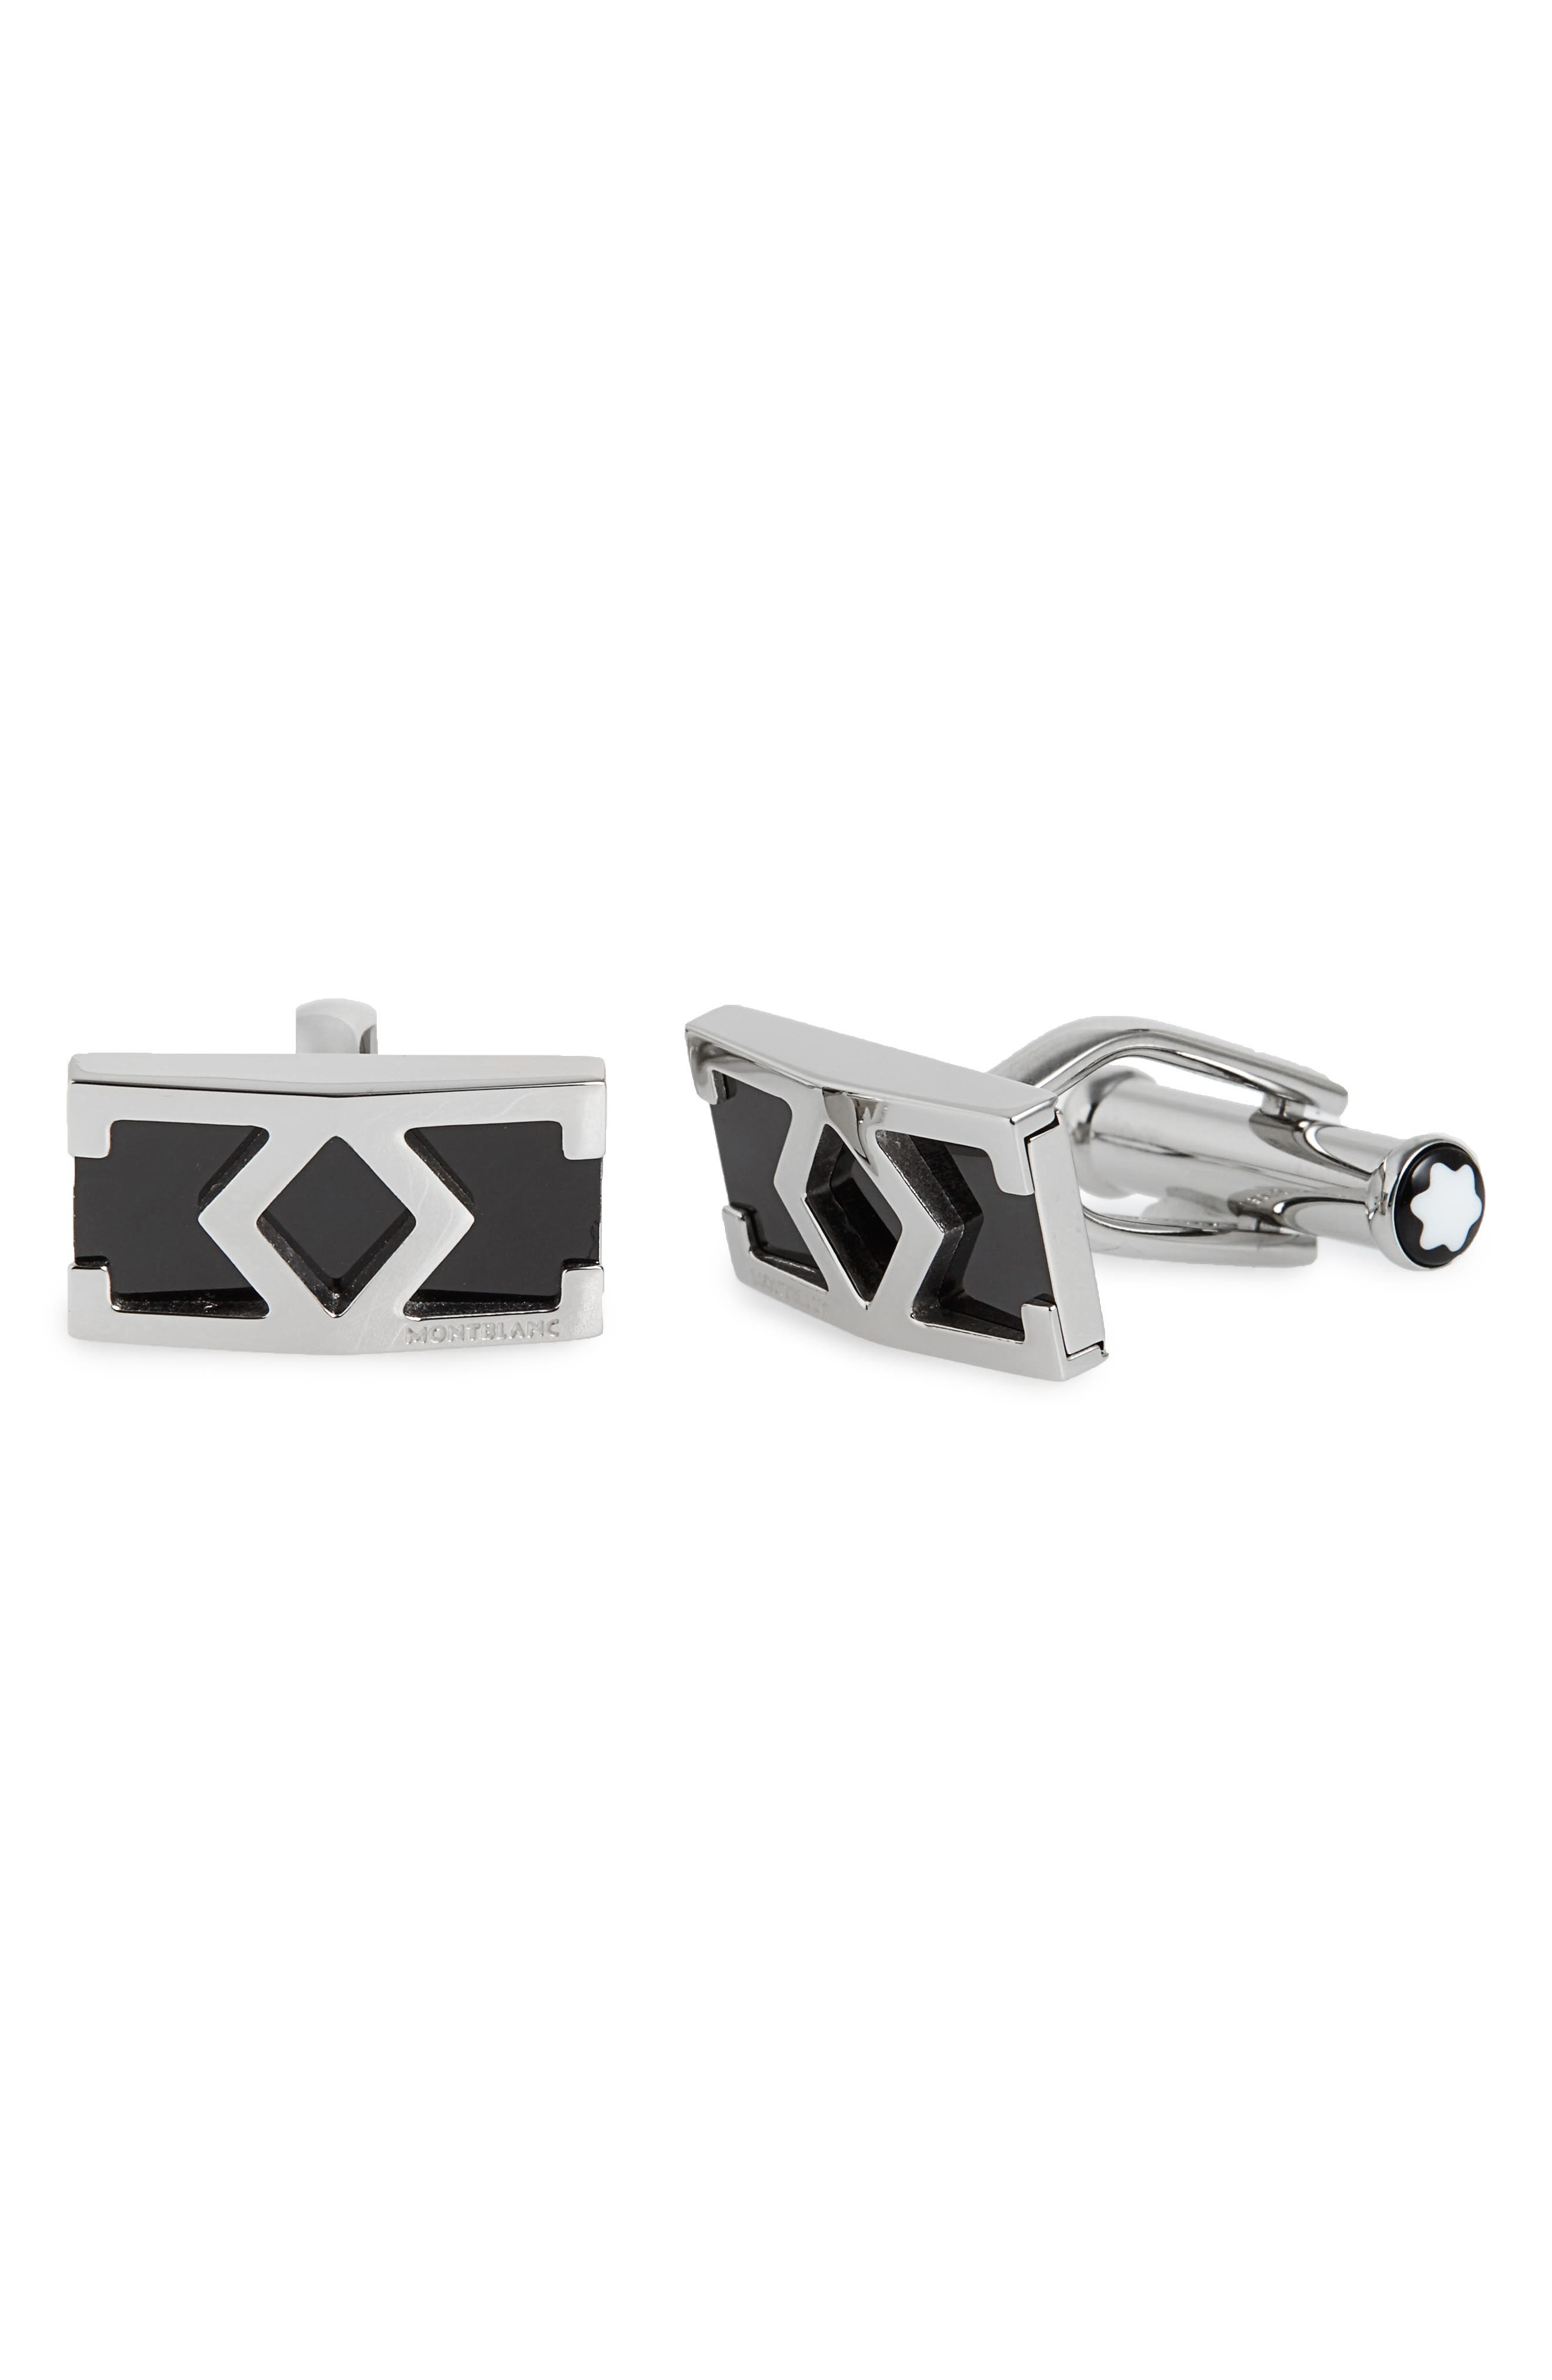 M Motif Cuff Links,                         Main,                         color, Stainless Steel